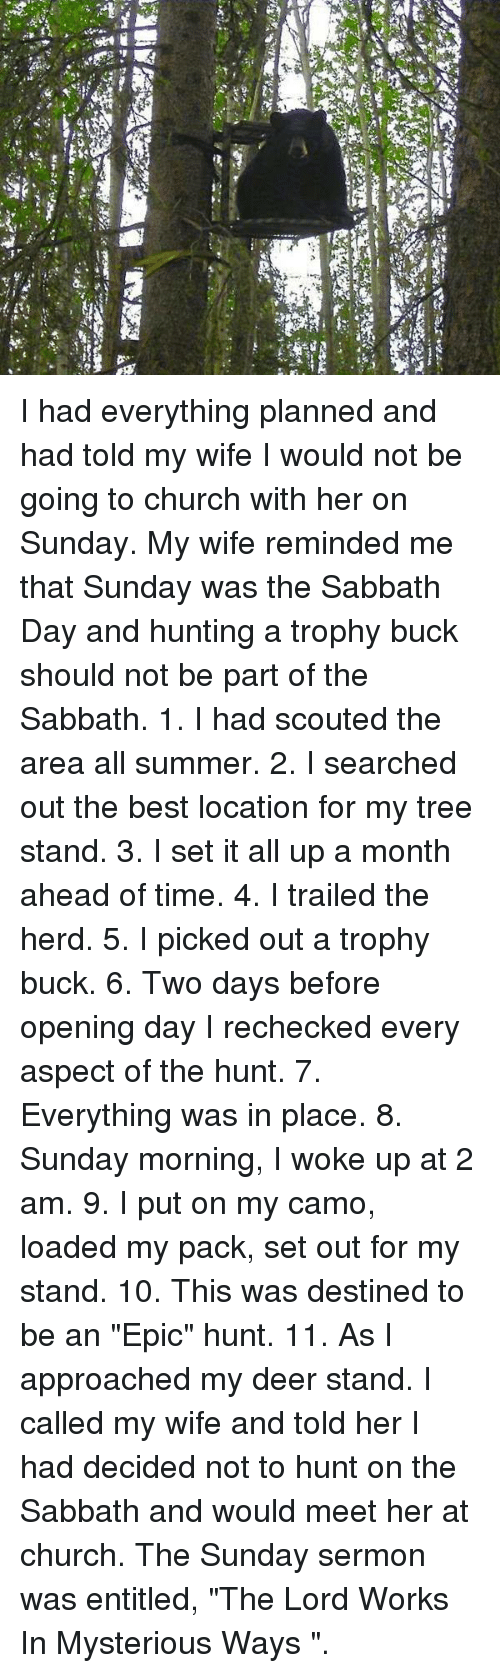 """Bucked: I had everything planned and had told my wife I would not be going to church with her on Sunday. My wife reminded me that Sunday was the Sabbath Day and hunting a trophy buck should not be part of the Sabbath.   1. I had scouted the area all summer.   2. I searched out the best location for my tree stand.   3. I set it all up a month ahead of time.   4. I trailed the herd.   5. I picked out a trophy buck.   6. Two days before opening day I rechecked every aspect of the hunt.   7. Everything was in place.   8. Sunday morning, I woke up at 2 am.   9. I put on my camo, loaded my pack, set out for my stand.   10. This was destined to be an """"Epic"""" hunt.   11. As I approached my deer stand.    I called my wife and told her I had decided not to hunt on the Sabbath and would meet her at church. The Sunday sermon was entitled, """"The Lord Works In Mysterious Ways """"."""